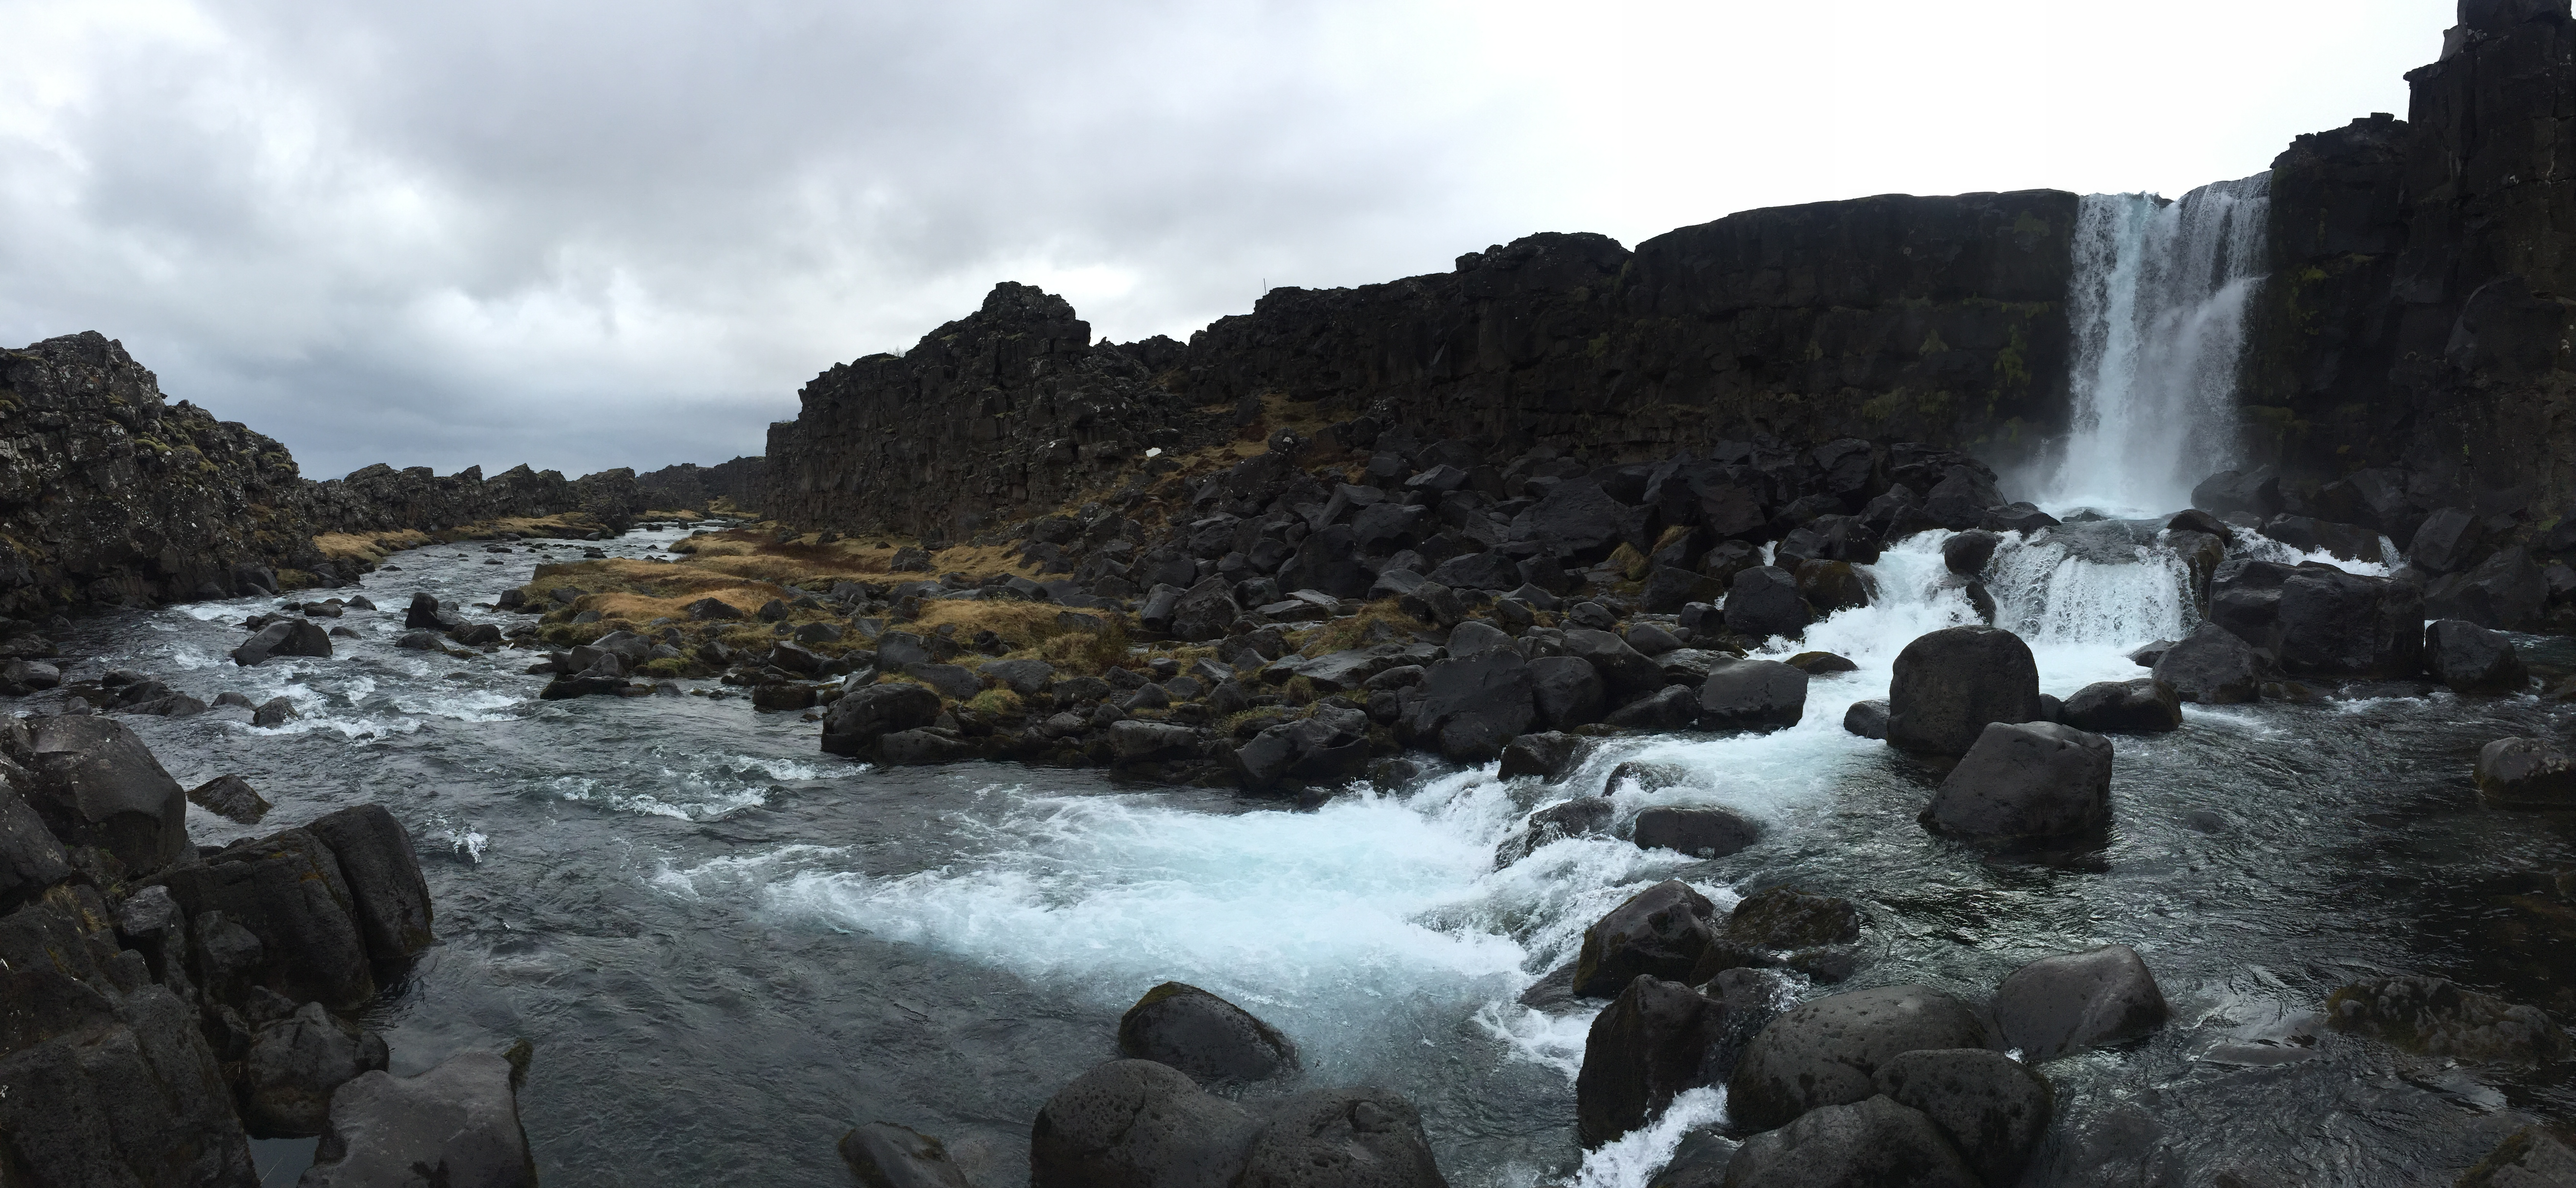 Öxarárfoss waterfall in Iceland with water rolling over the rocks